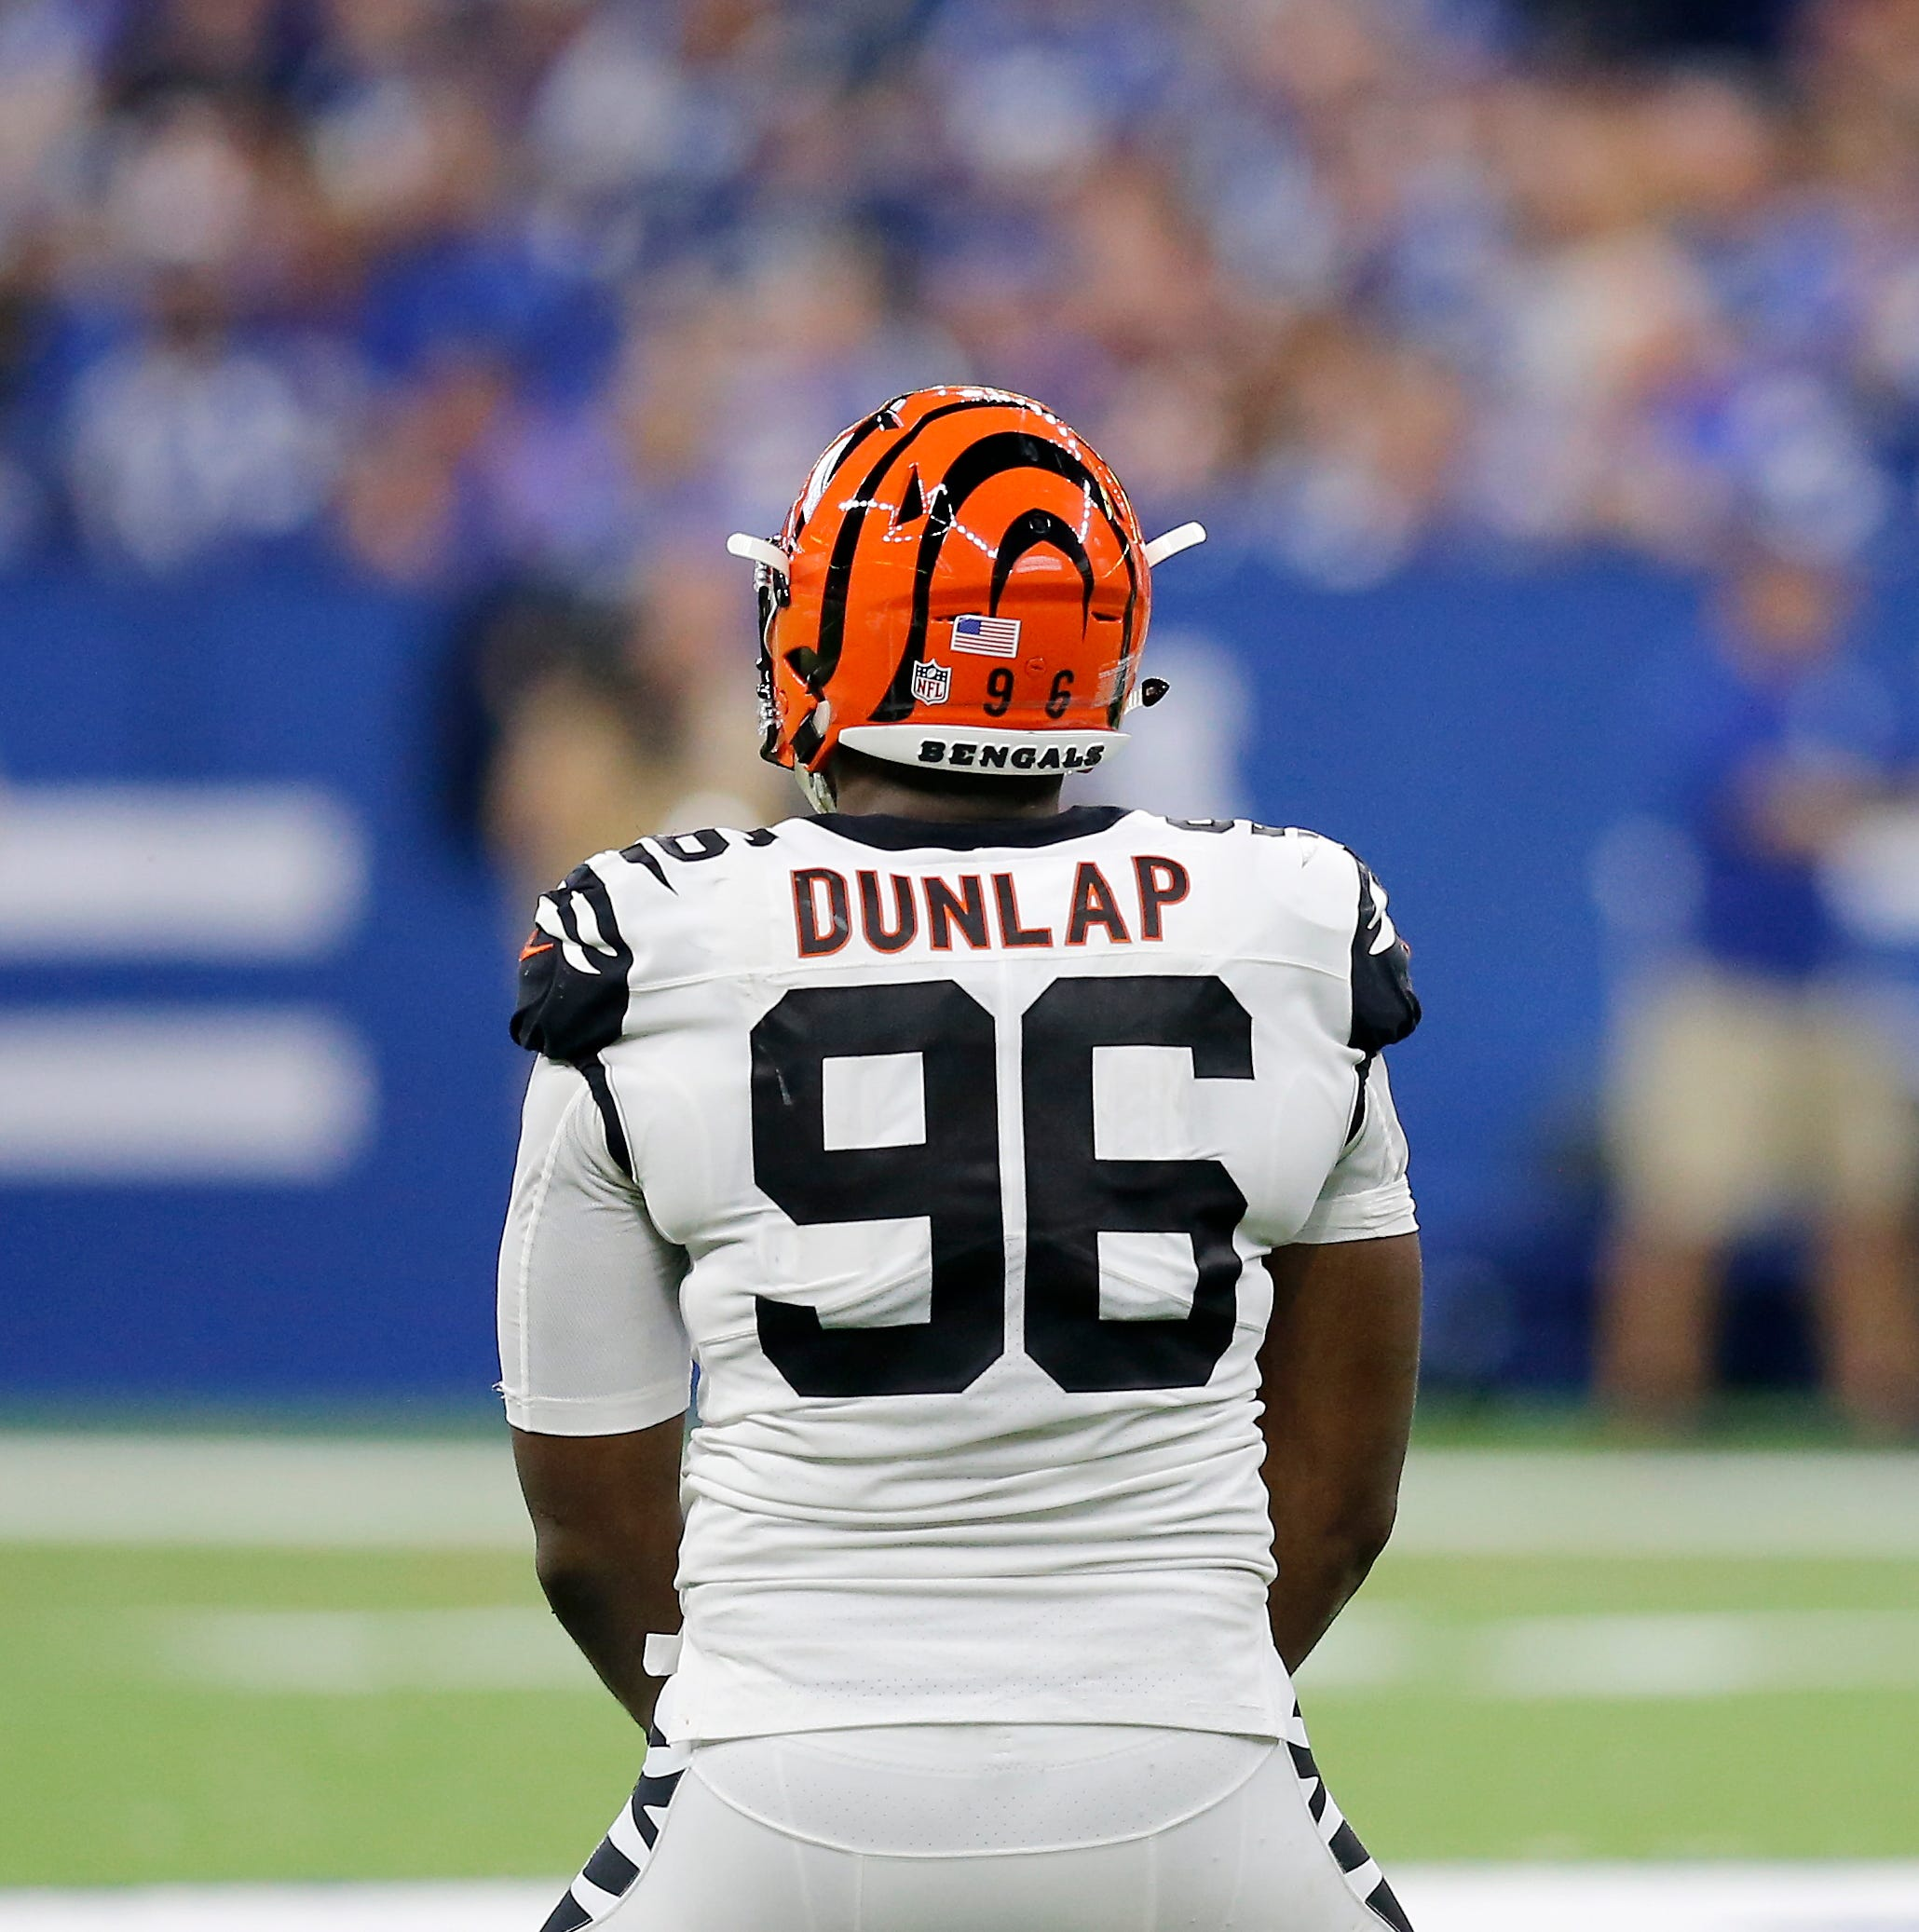 Refereeing decisions, rules interpretations linger over Cincinnati Bengals win against Indianapolis Colts